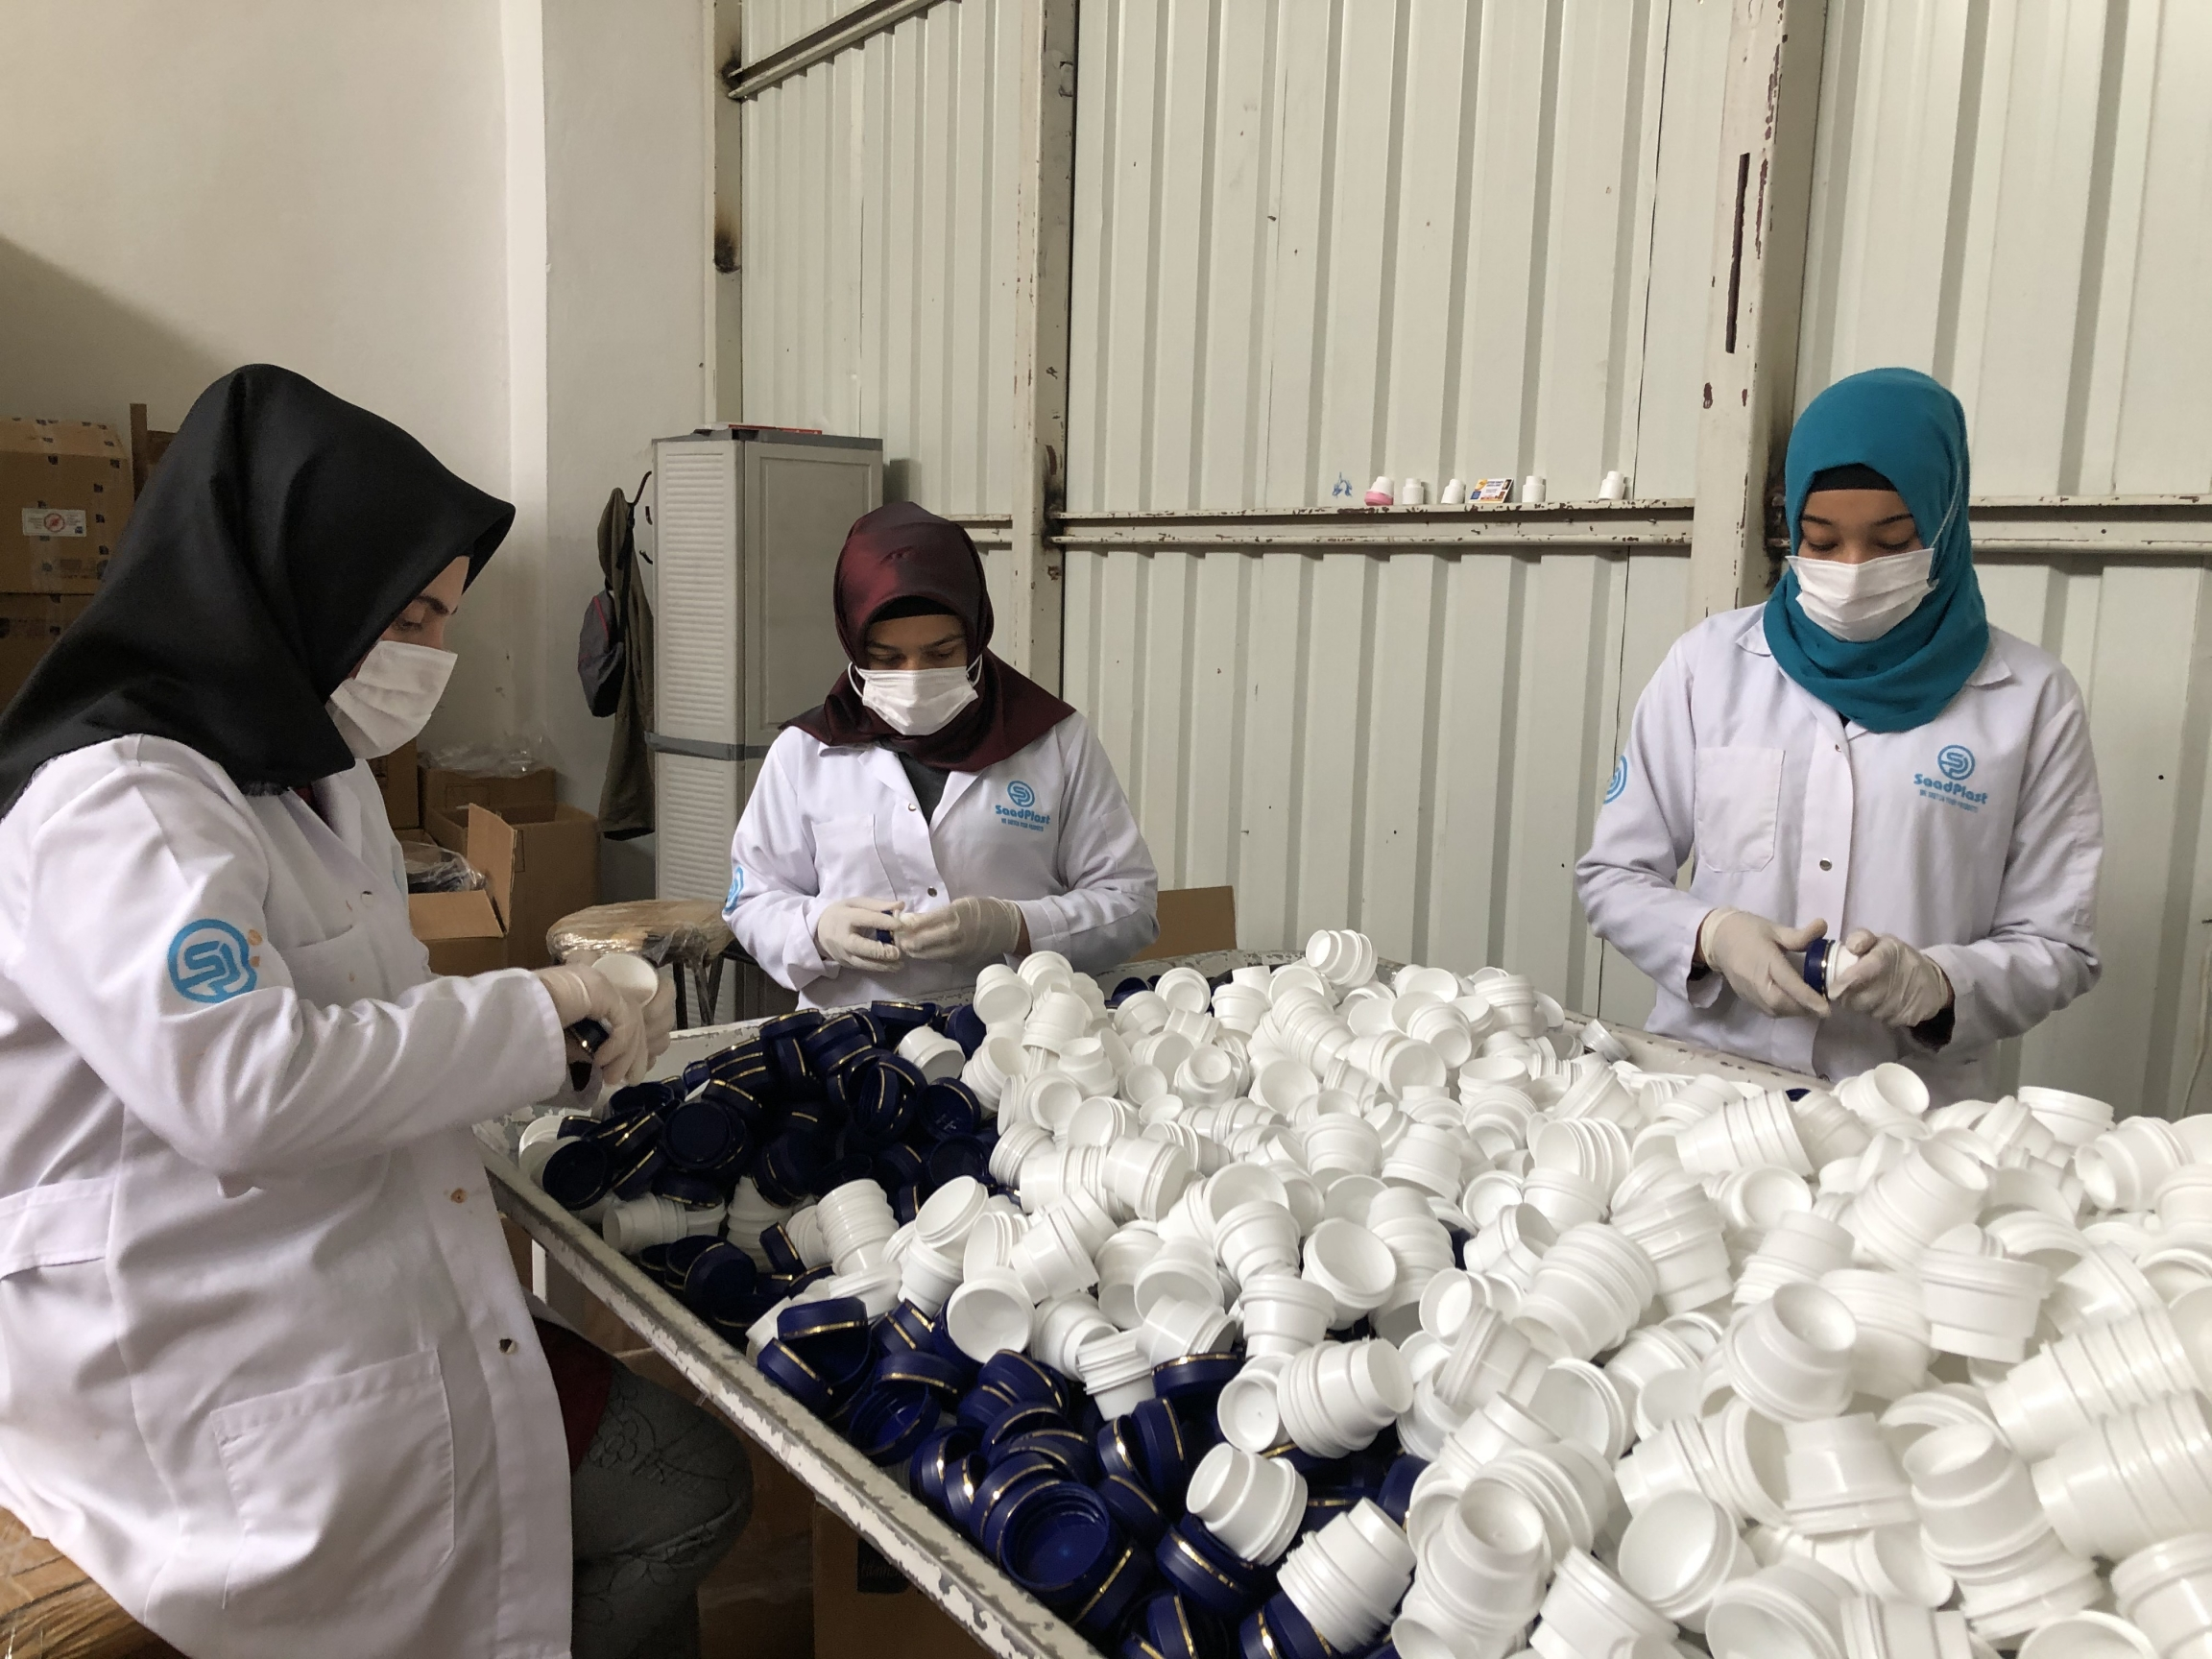 Workers at the plastic factory in Gaziantep, Turkey. Saad Chouihna started the business in Gaziantep after his family's business in Aleppo was burned down by Syrian security forces.